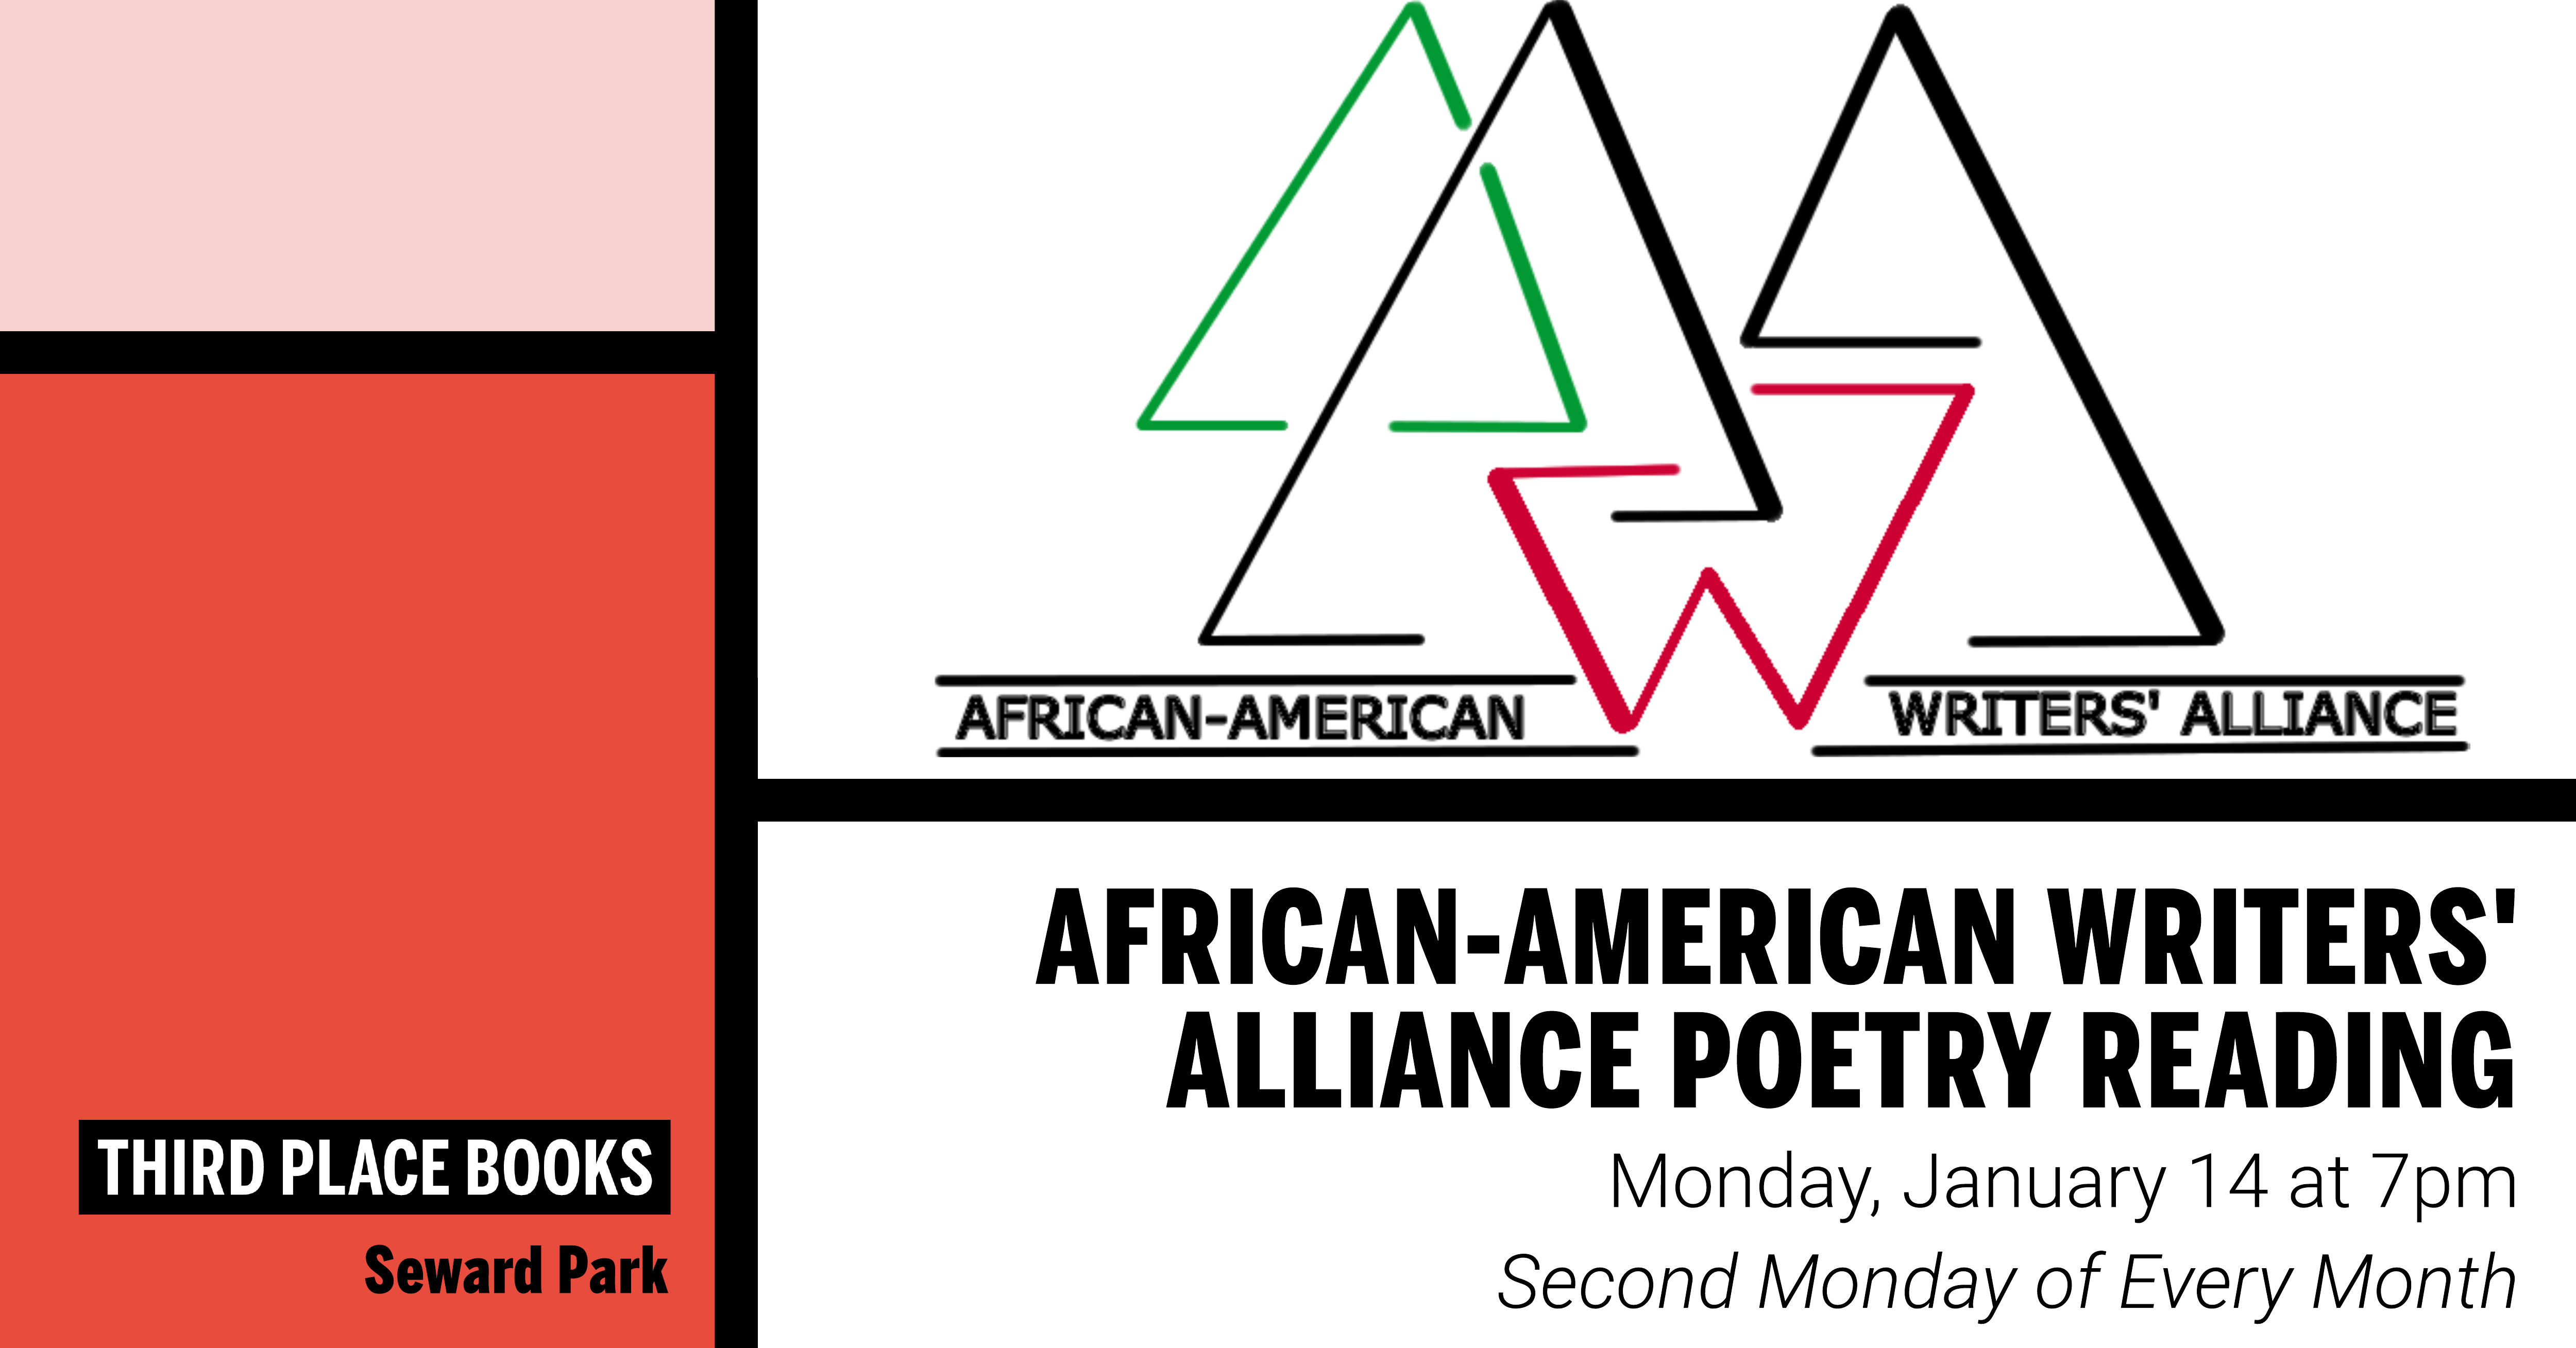 African-American Writers' Alliance Poetry Reading on Monday, January 14 at 7pm